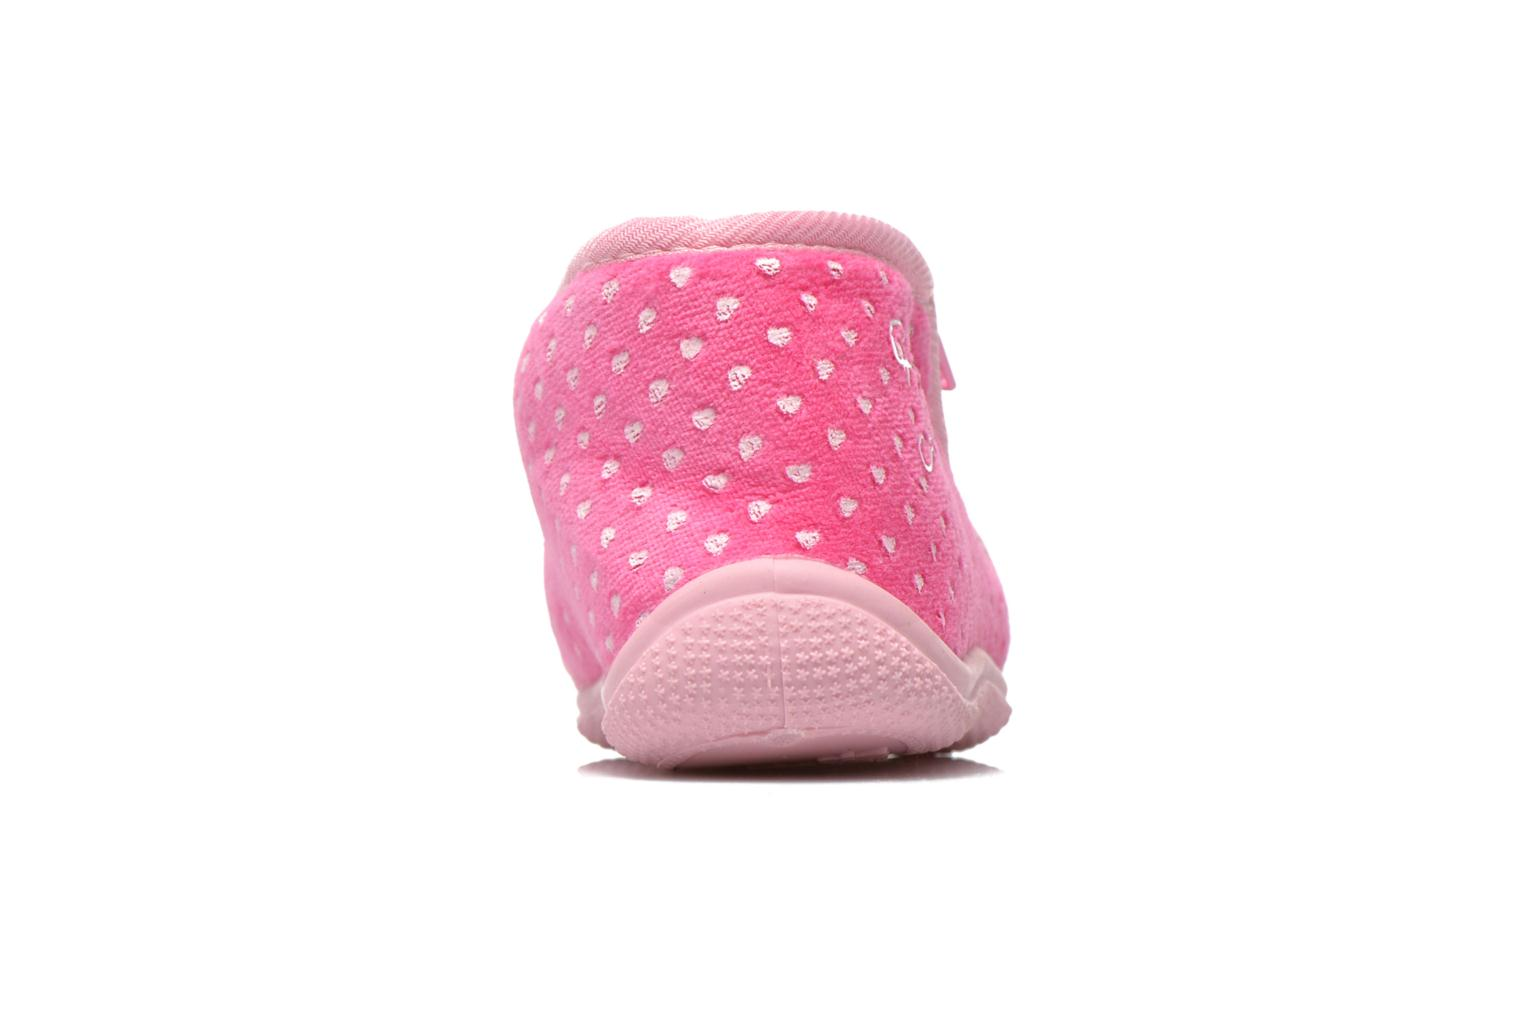 Chaussons Hello Kitty Hk Reste Rose vue droite